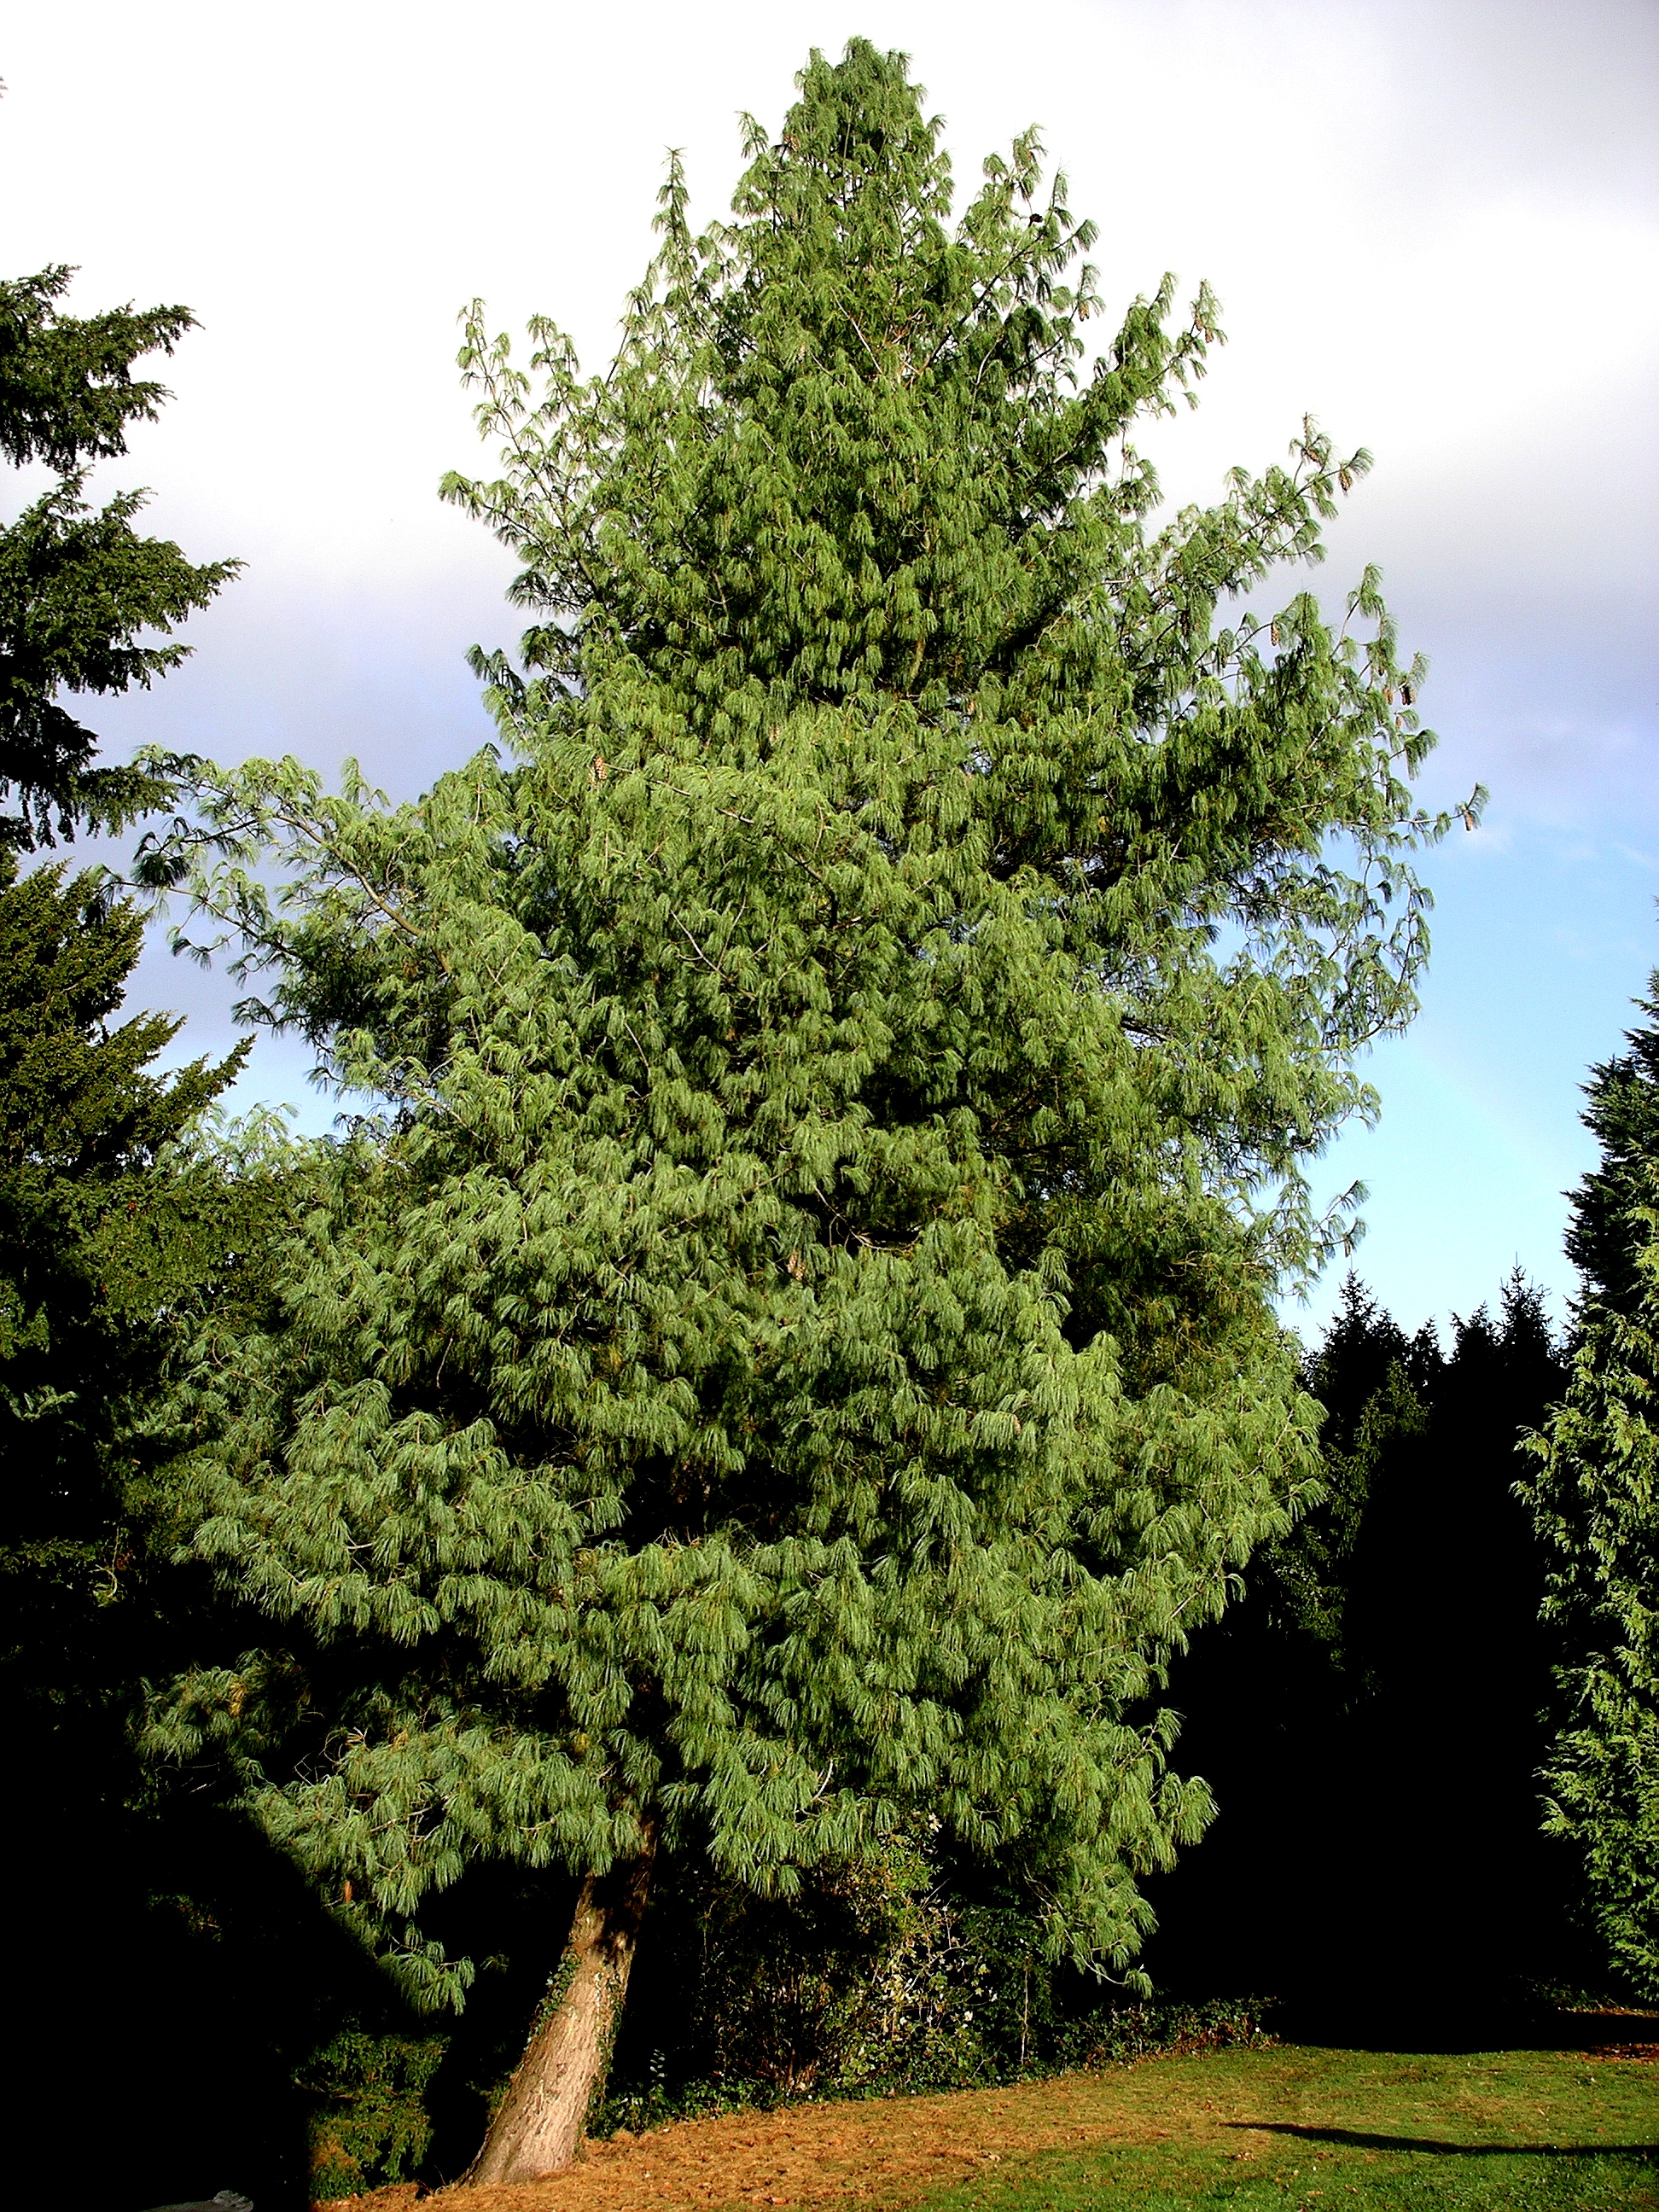 http://upload.wikimedia.org/wikipedia/commons/f/f6/Bhutan_pine_tree.JPG